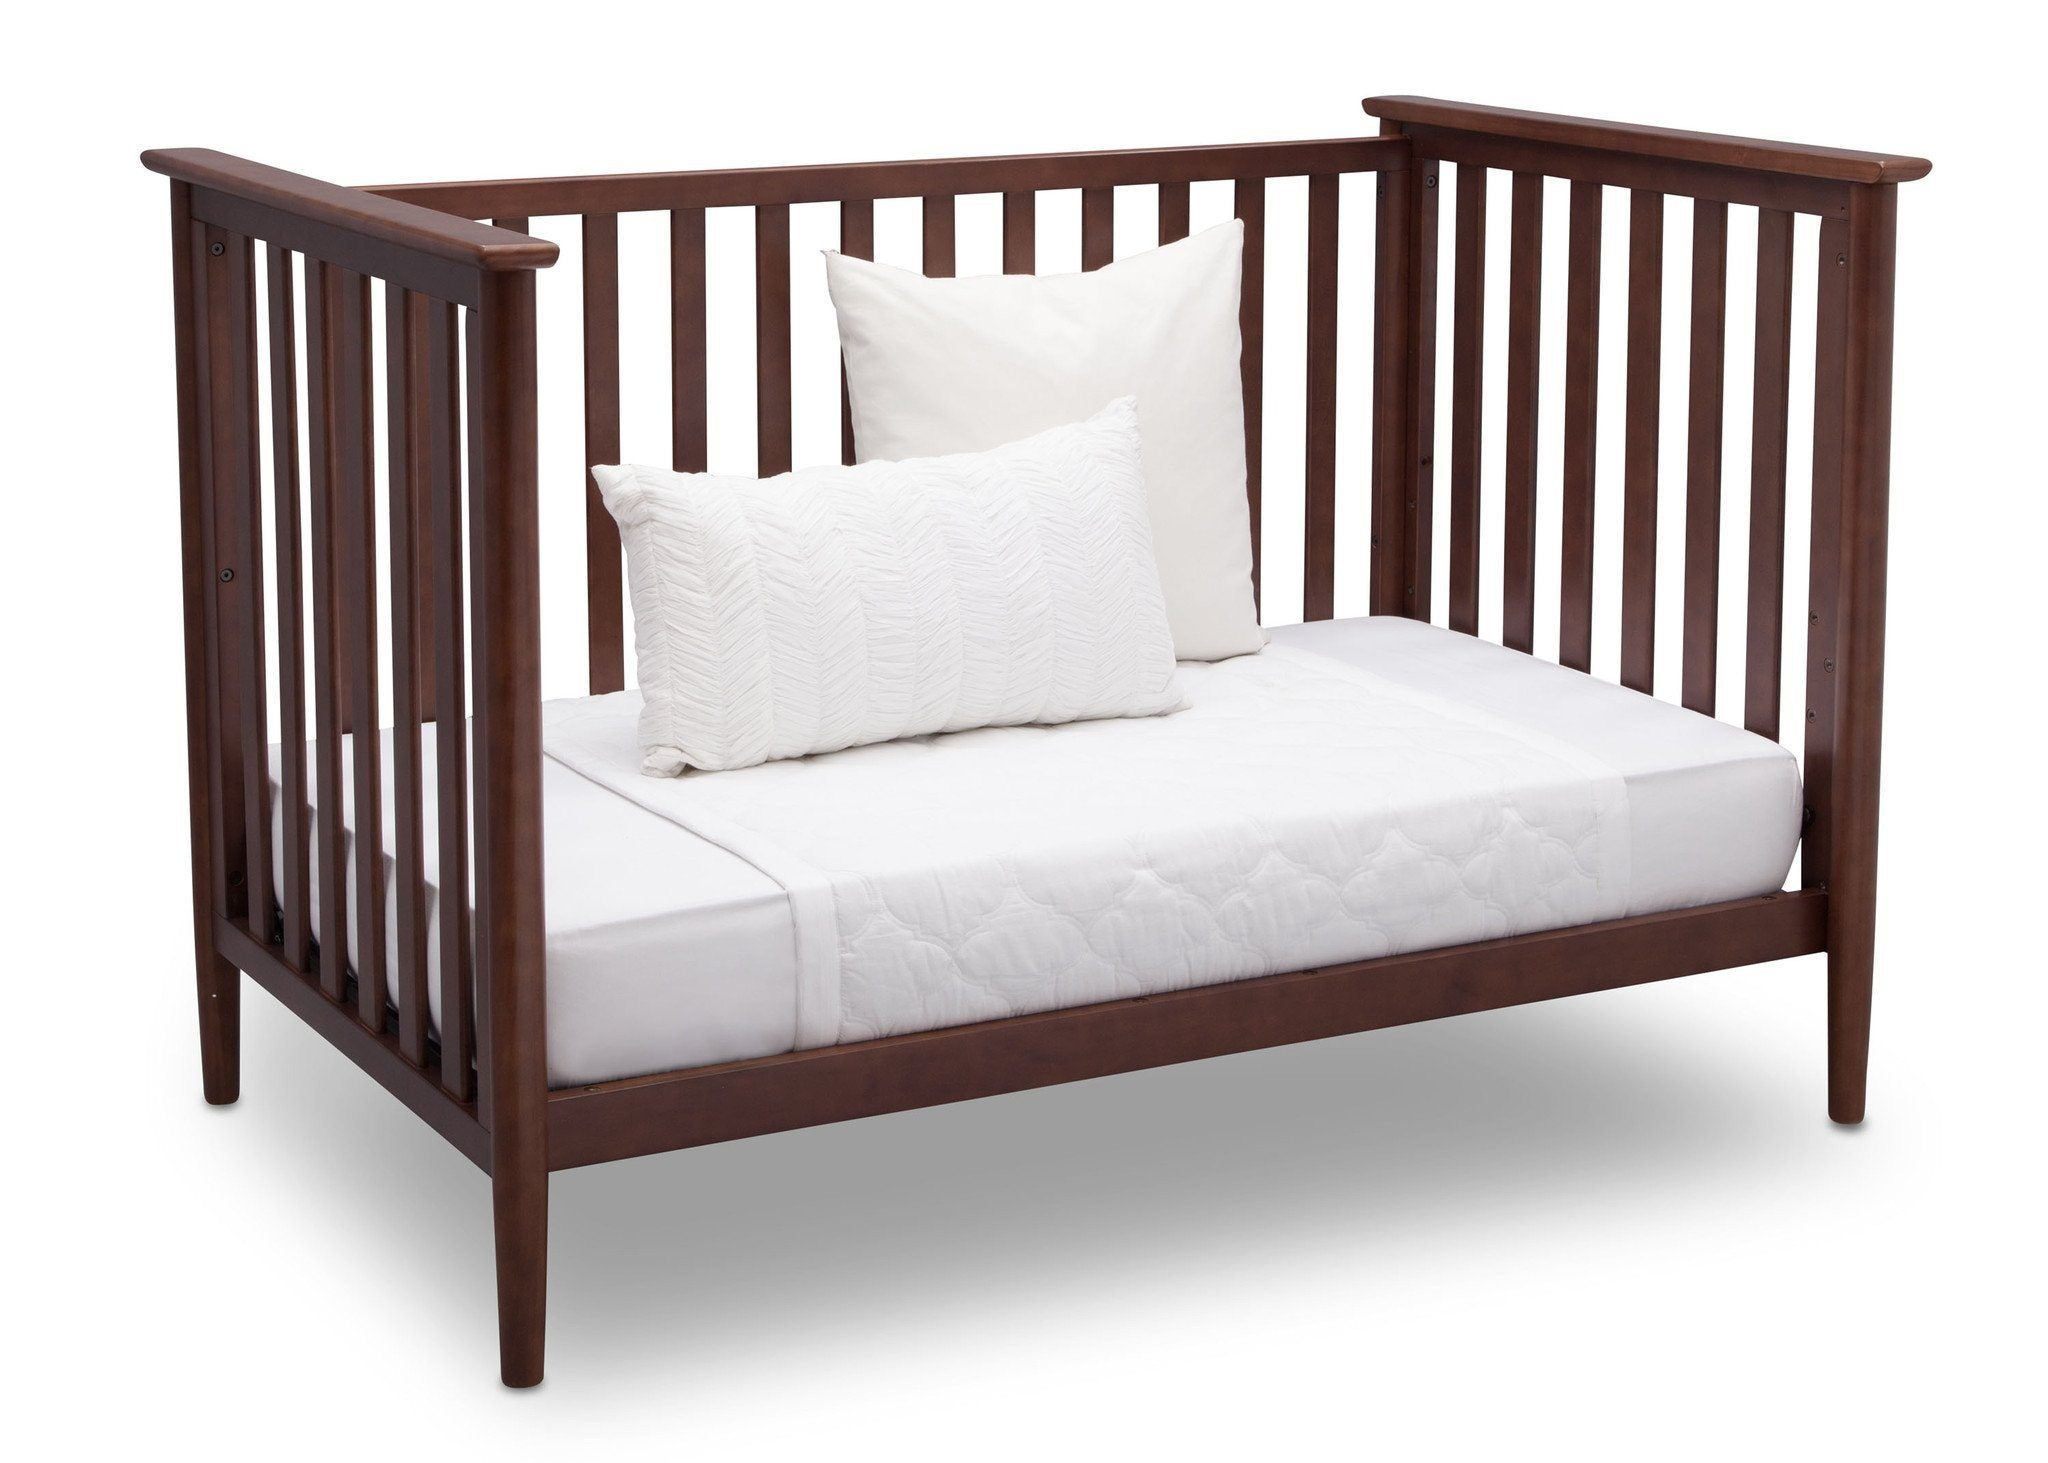 Delta Children Walnut (1316) Greyson 3-in-1 Crib, Angled Conversion to Daybed, b5b